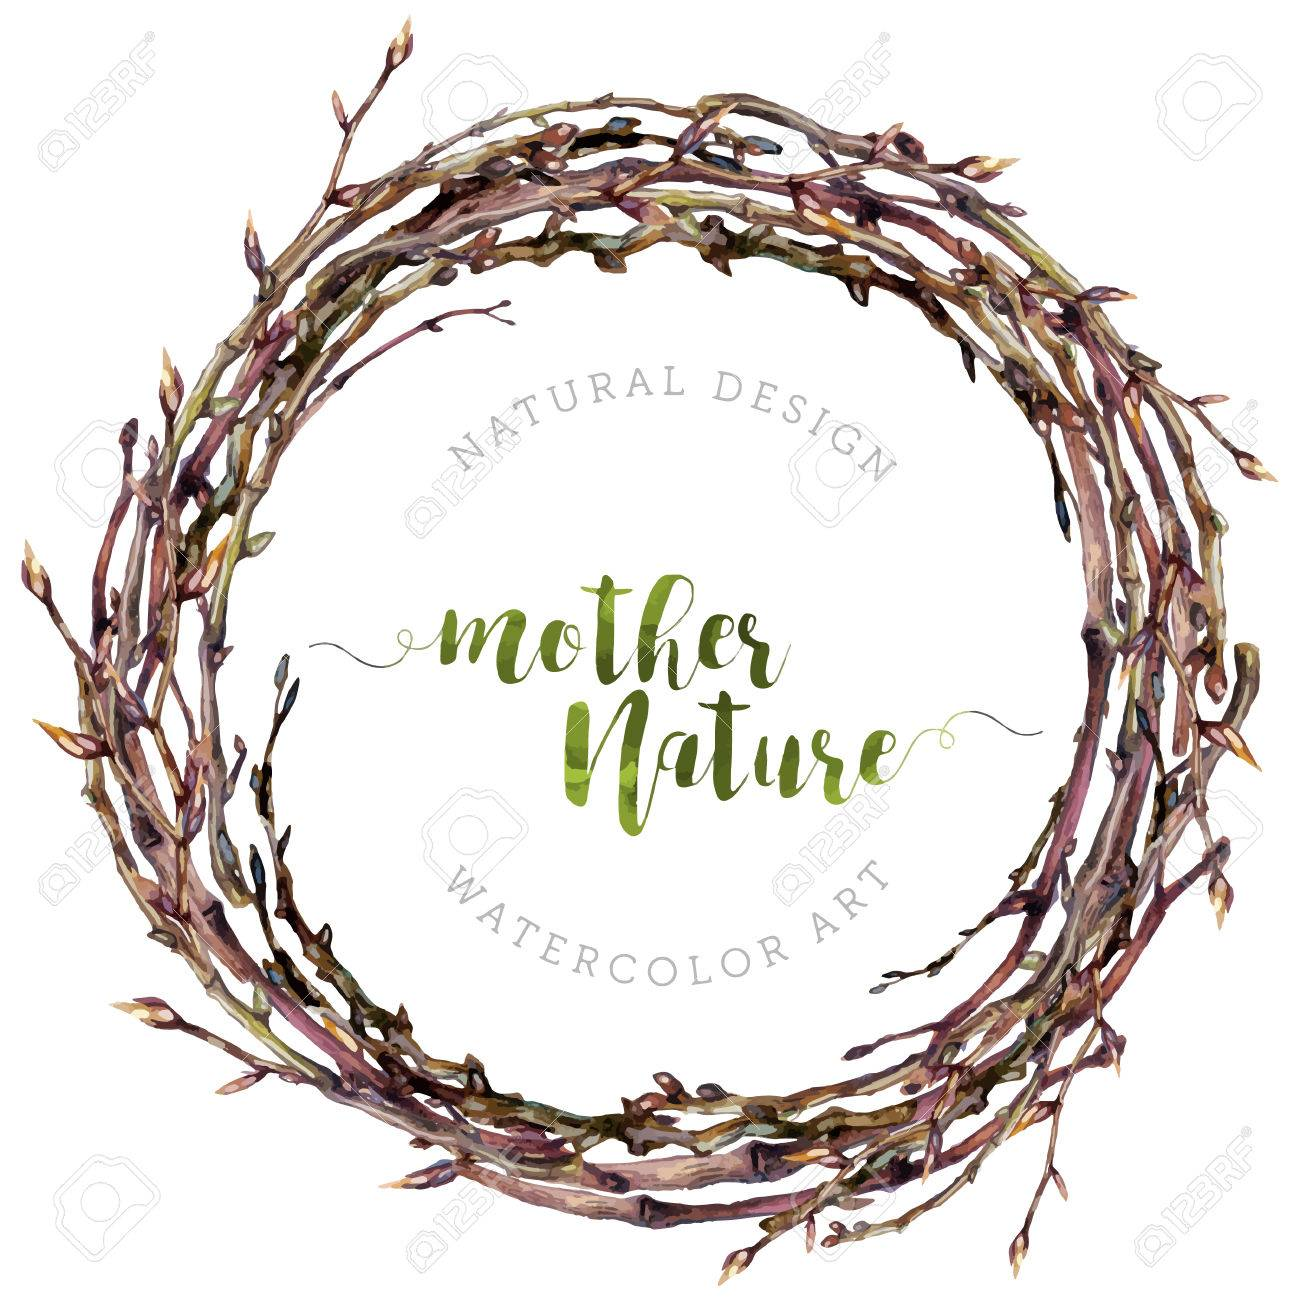 Watercolor Boho wreath made of dry twigs and osier branches isolated on white. Natural decoration. Wooden sticks garland. Christmas chaplet made of vine. Pussy-willow round frame. Vintage style. - 67828824